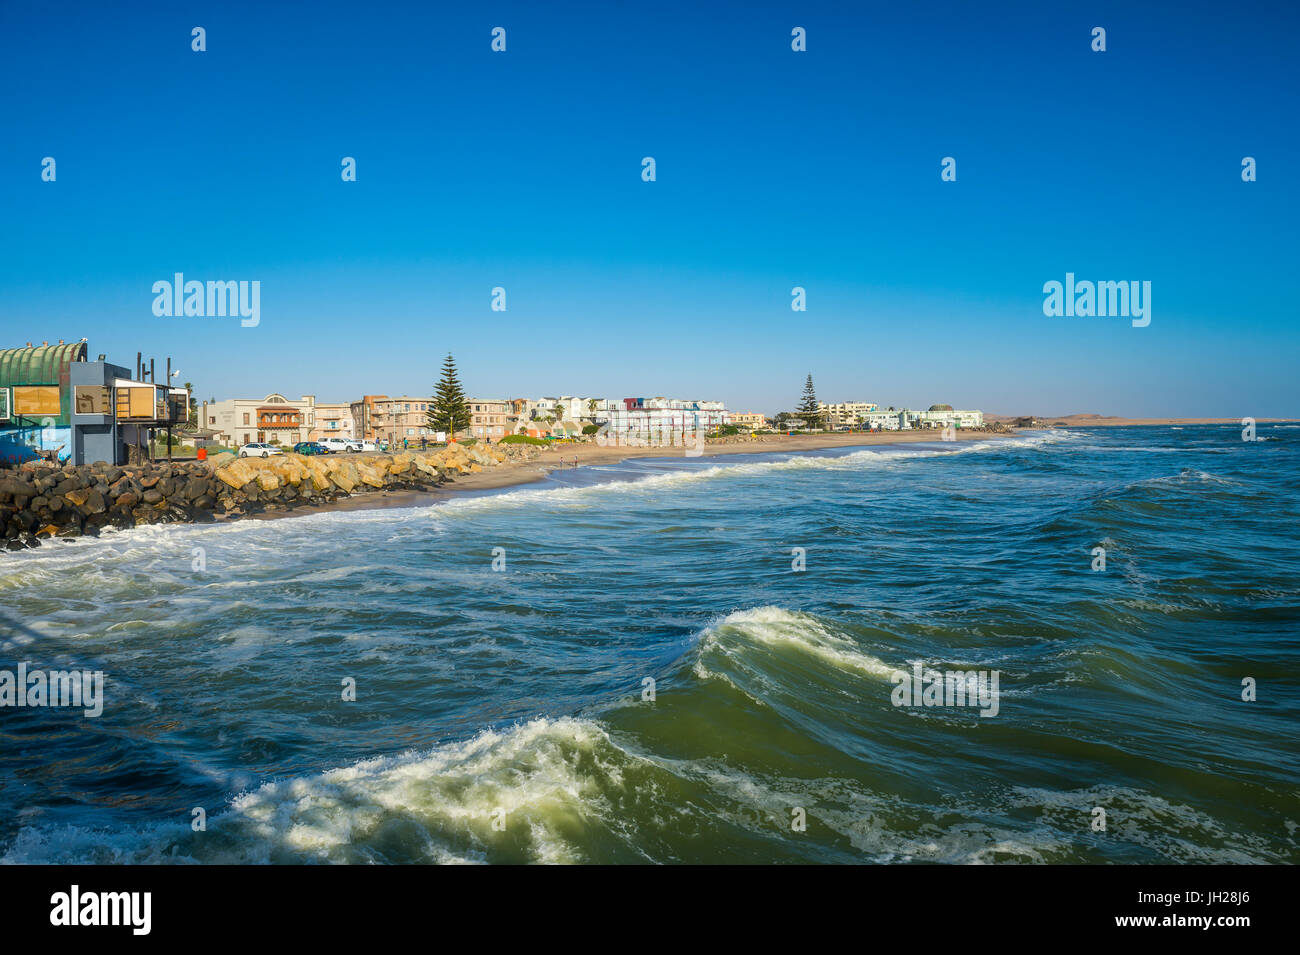 Beachfront of Swakopmund, Namibia, Africa - Stock Image